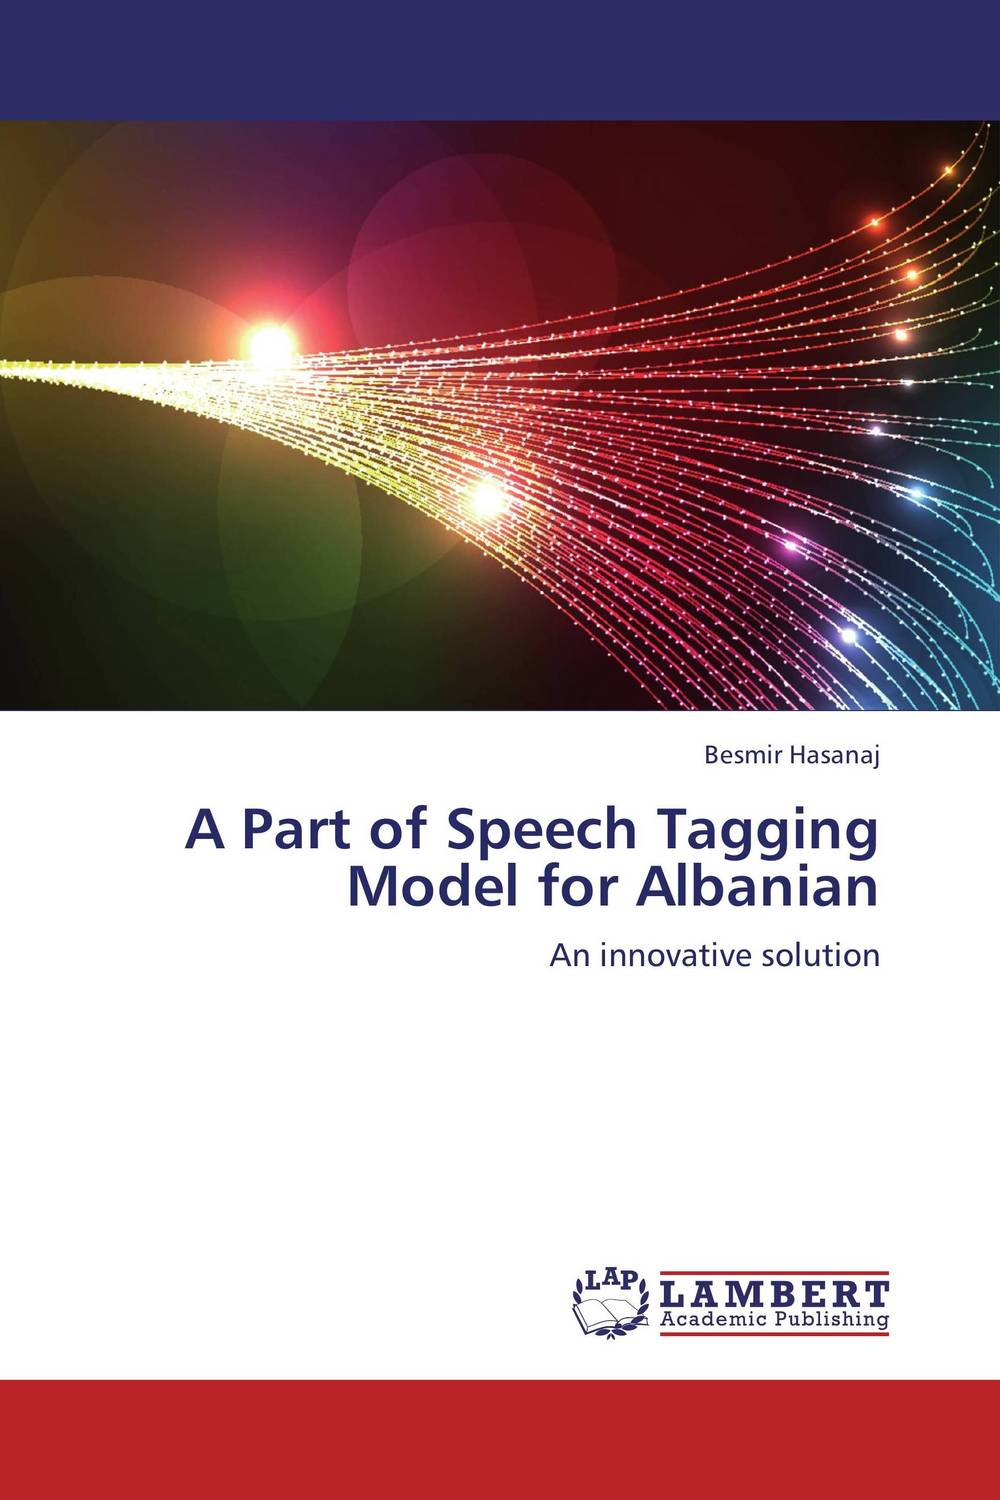 A Part of Speech Tagging Model for Albanian psfk presents future of mobile tagging volume 1